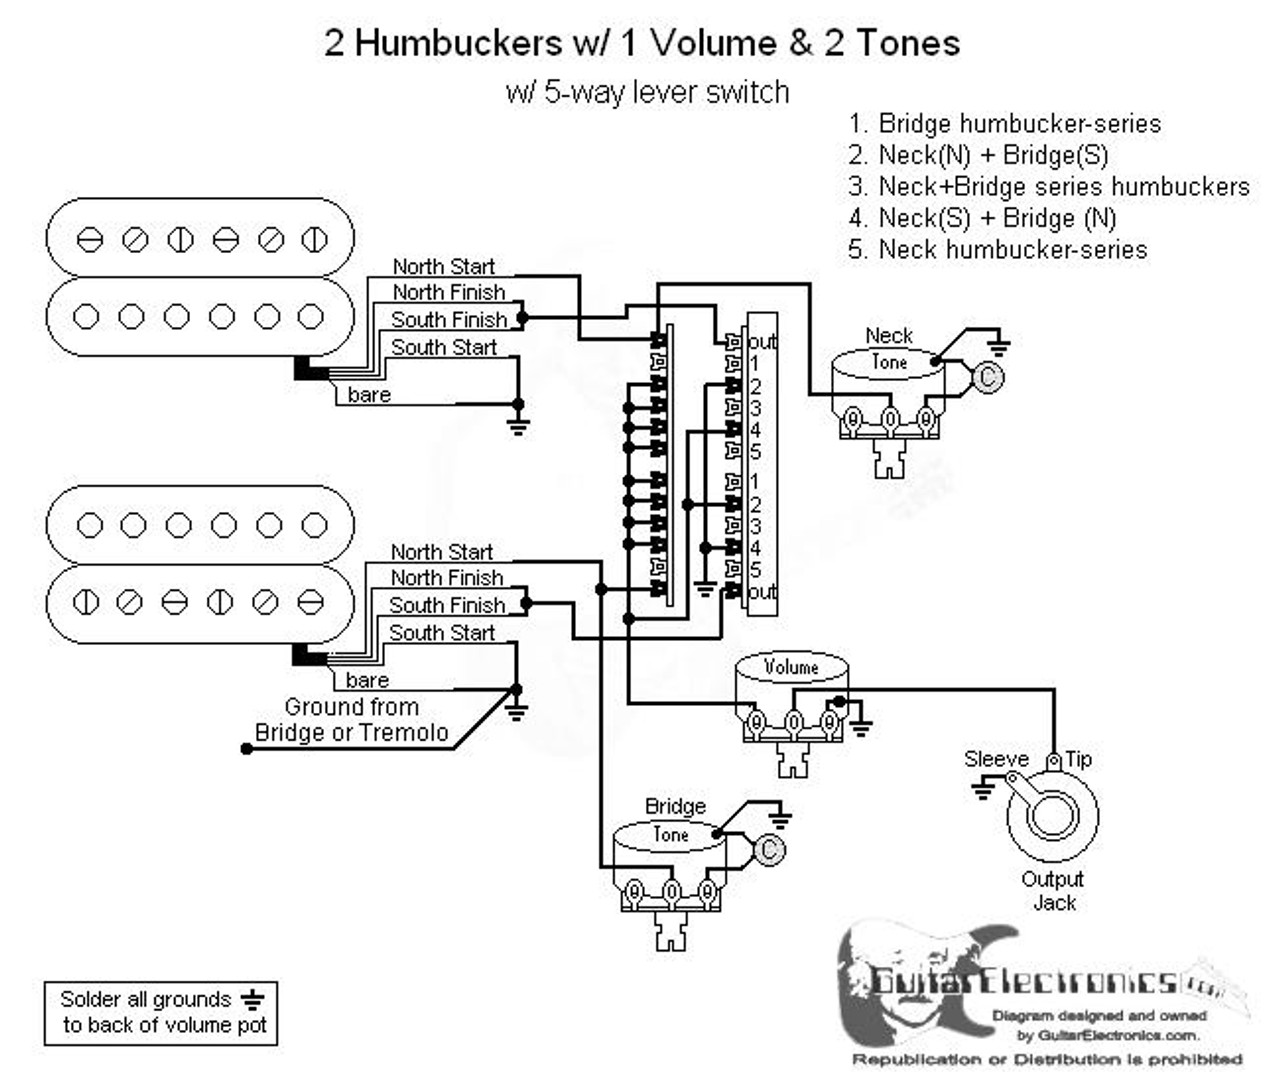 small resolution of 2 humbuckers 5 way lever switch 1 volume 2 tones 05two humbucker 5 way switch wiring